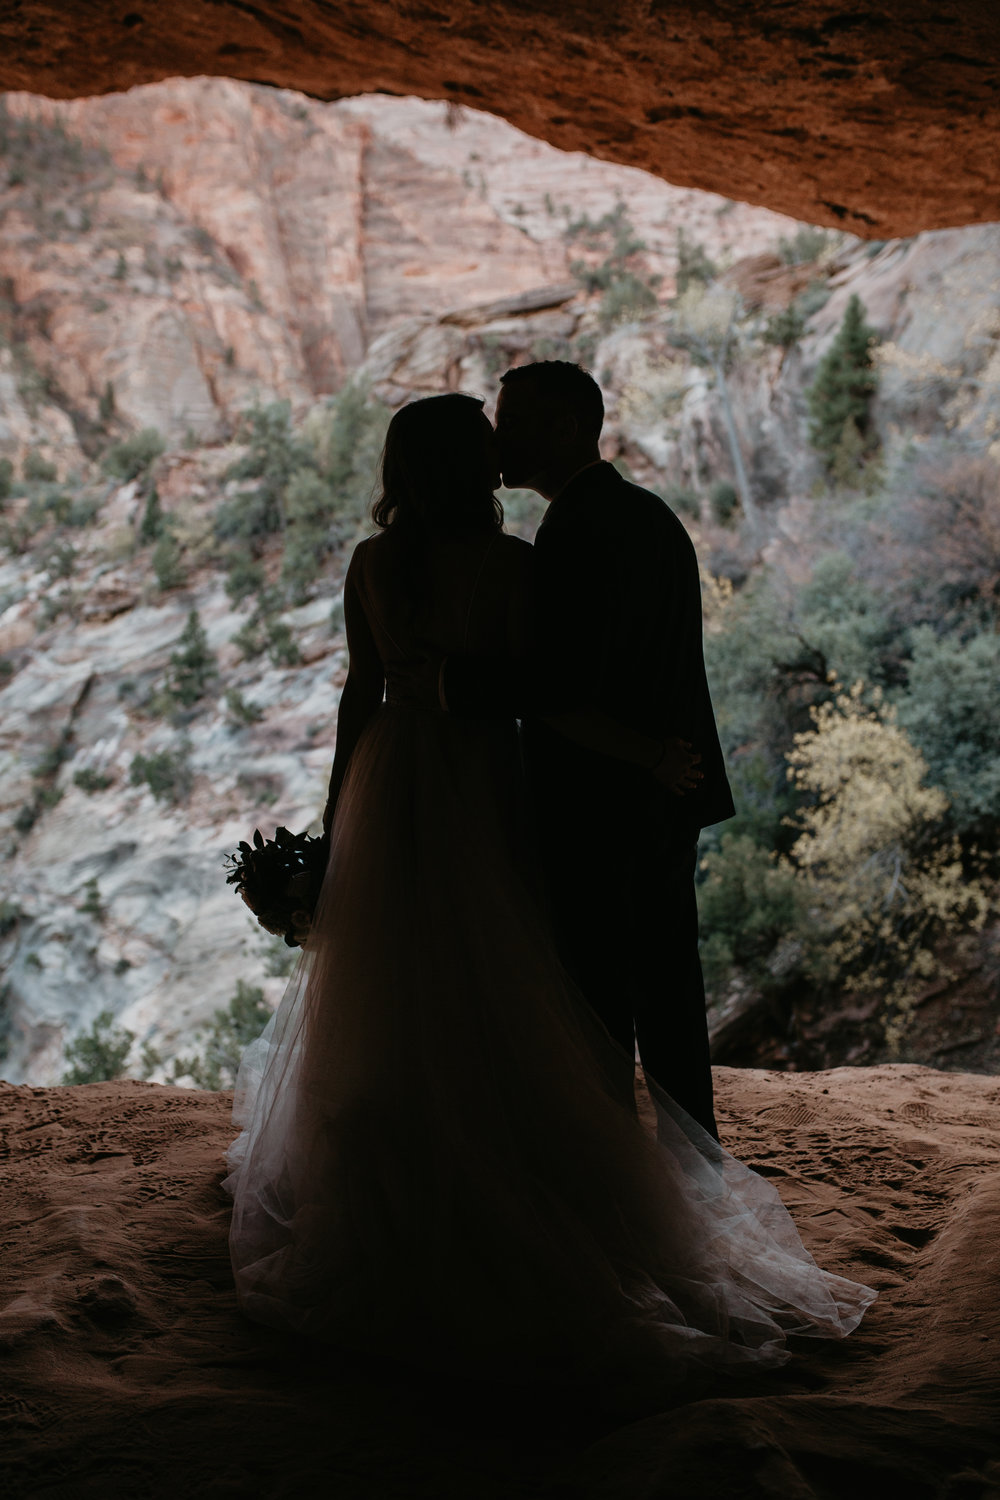 nicole-daacke-photography-zion-national-park-elopement-photographer-canyon-overlook-trail-elope-hiking-adventure-wedding-photos-fall-utah-red-rock-canyon-stgeorge-eloping-photographer-36.jpg